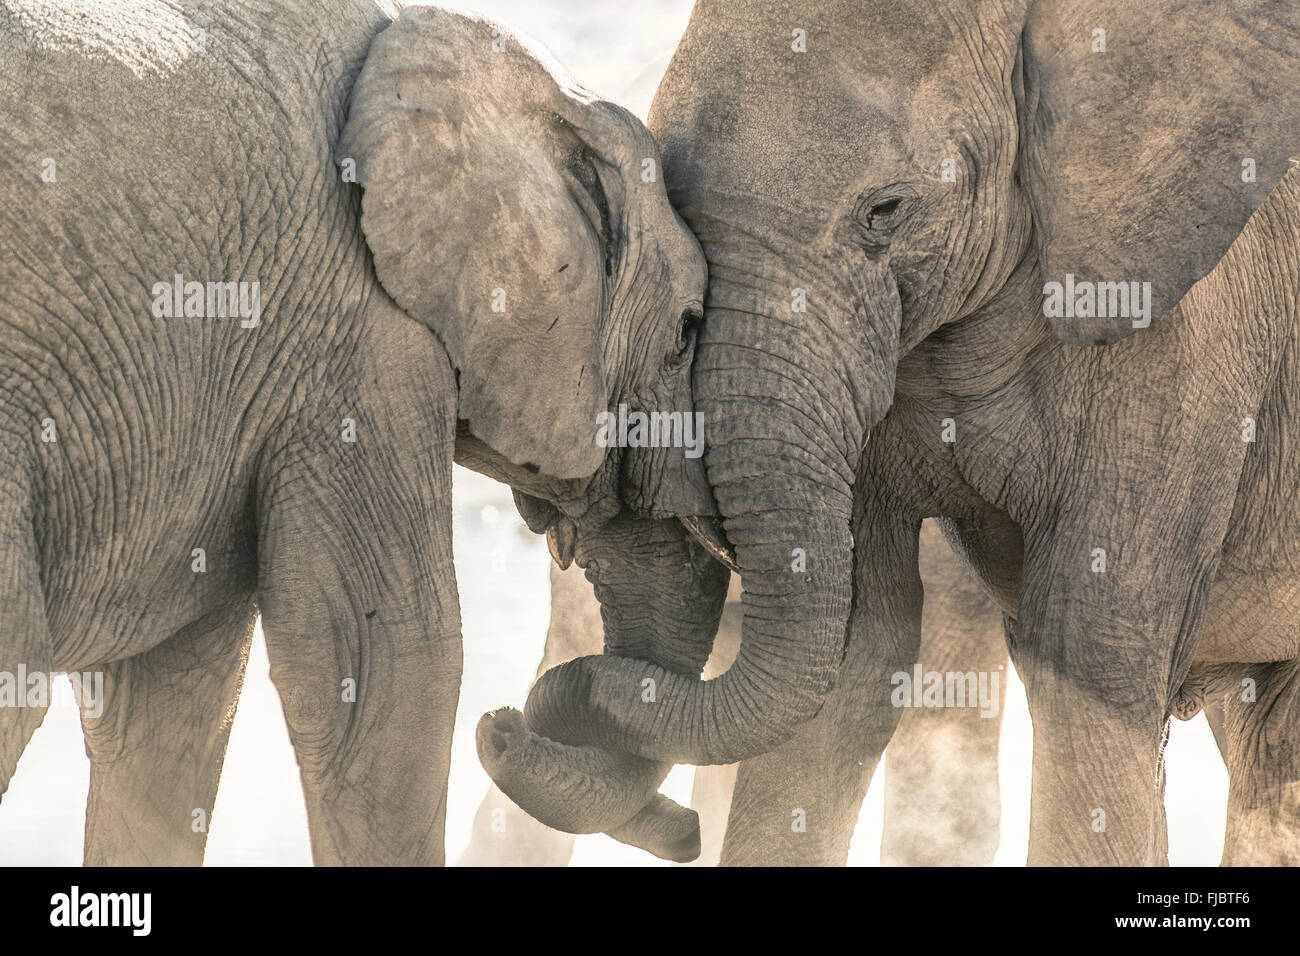 Two elephants tussle - Stock Image